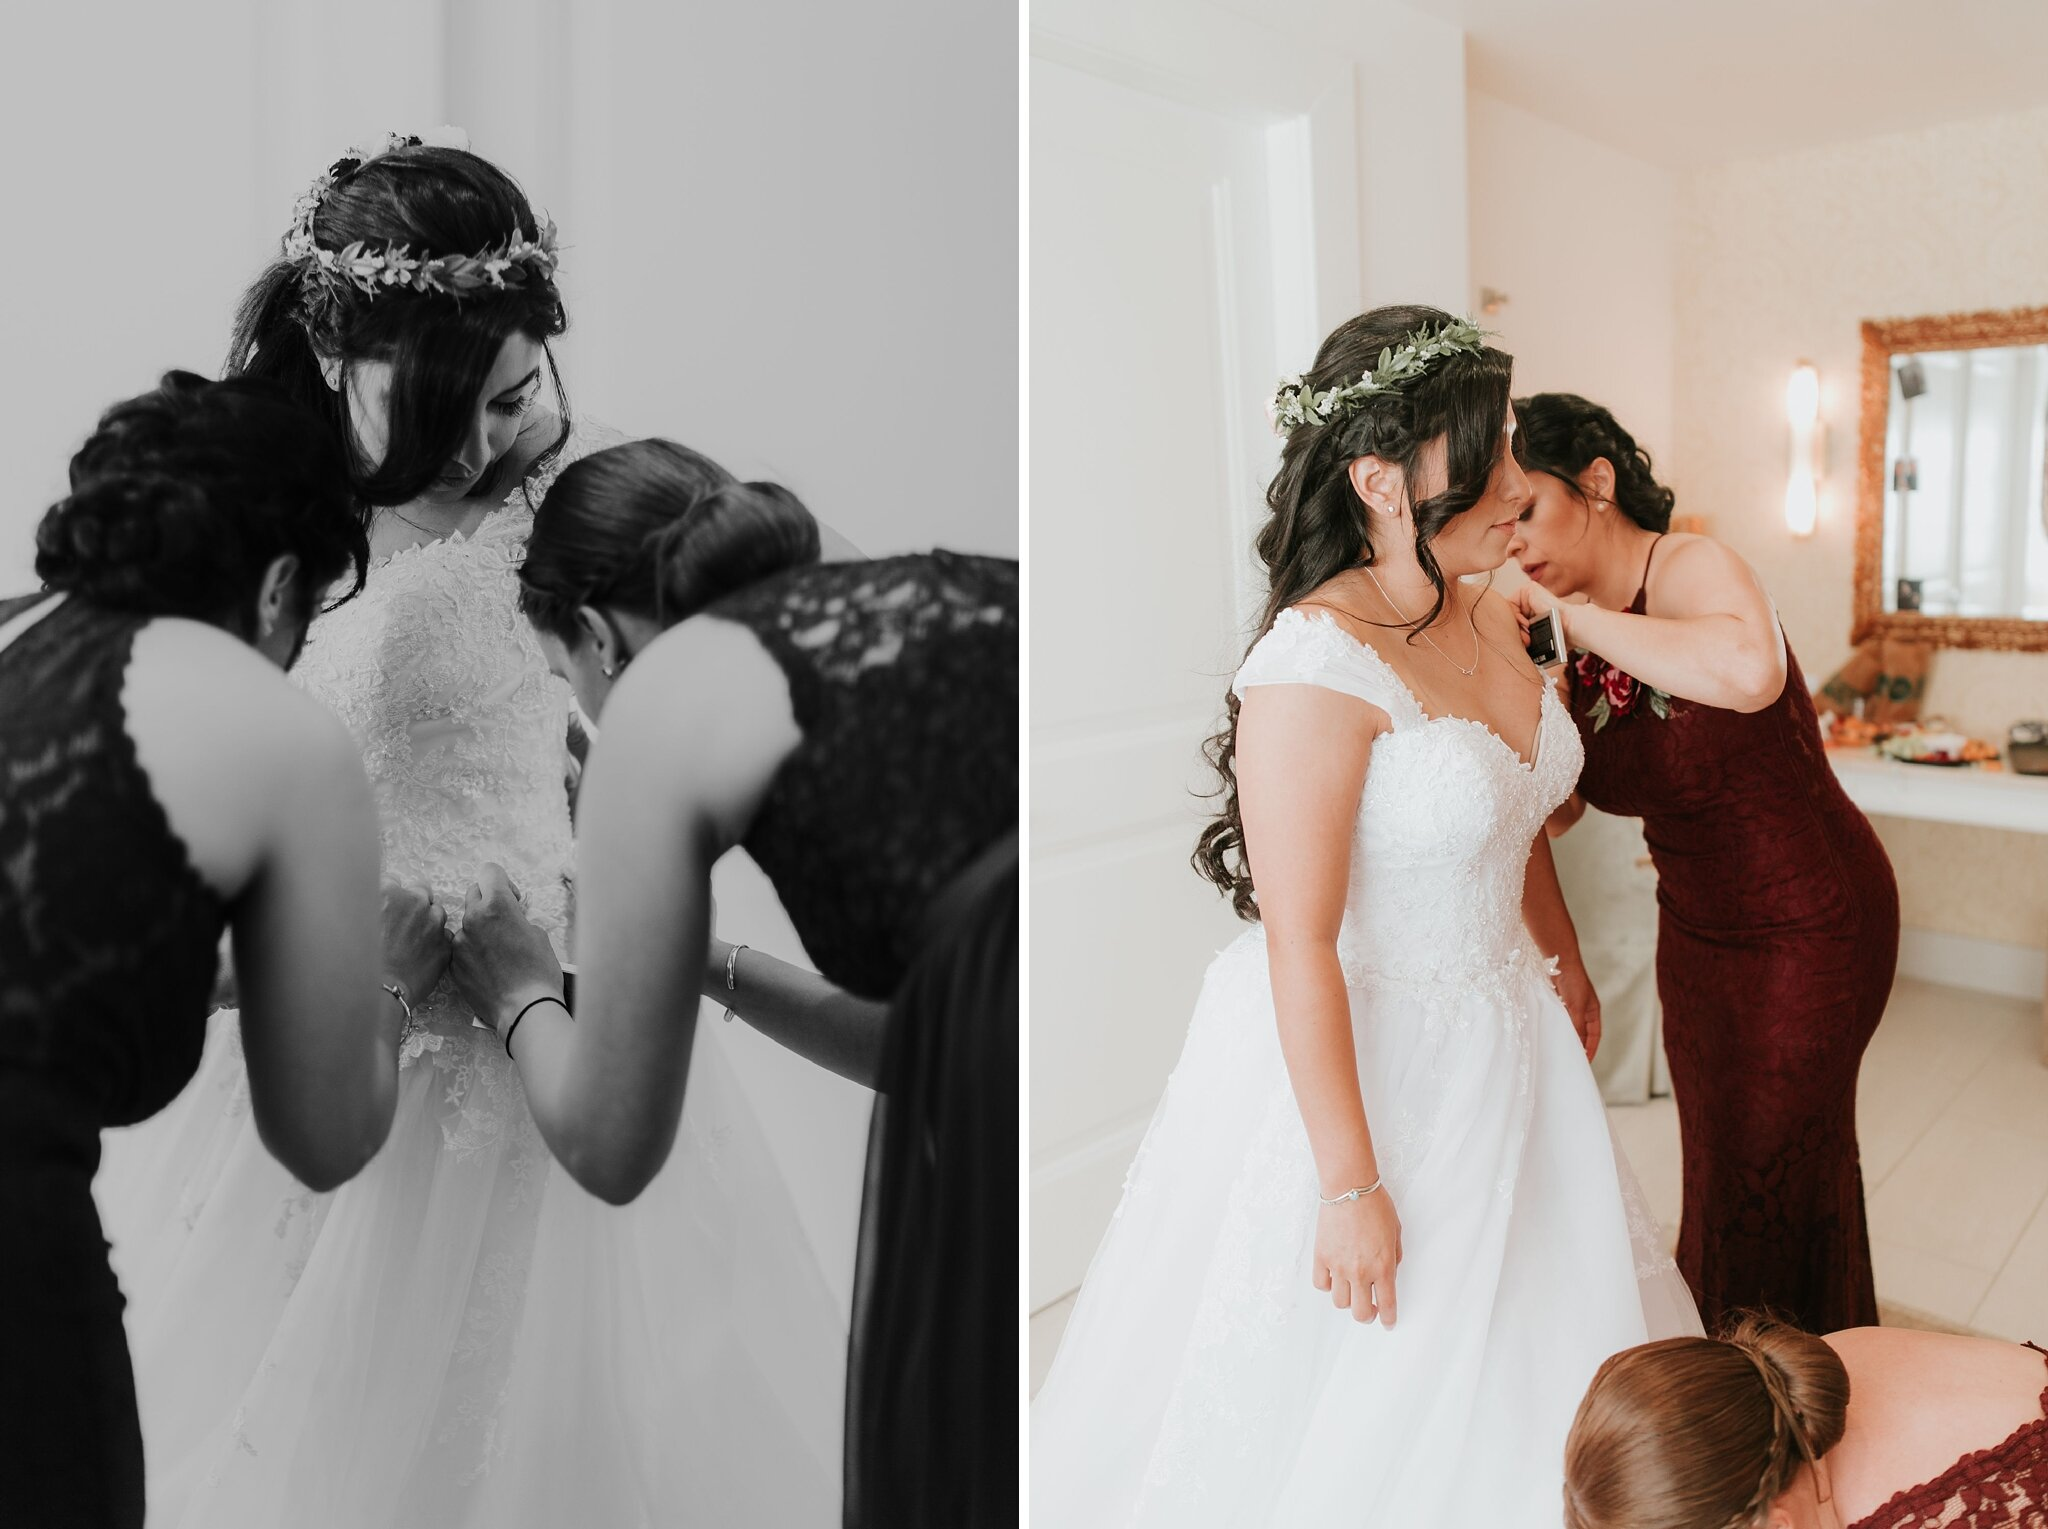 Alicia+lucia+photography+-+albuquerque+wedding+photographer+-+santa+fe+wedding+photography+-+new+mexico+wedding+photographer+-+new+mexico+wedding+-+wedding+-+bridal+gown+-+wedding+gown+-+ballgown+wedding+gown+-+ballgown+bridal+gown_0062.jpg